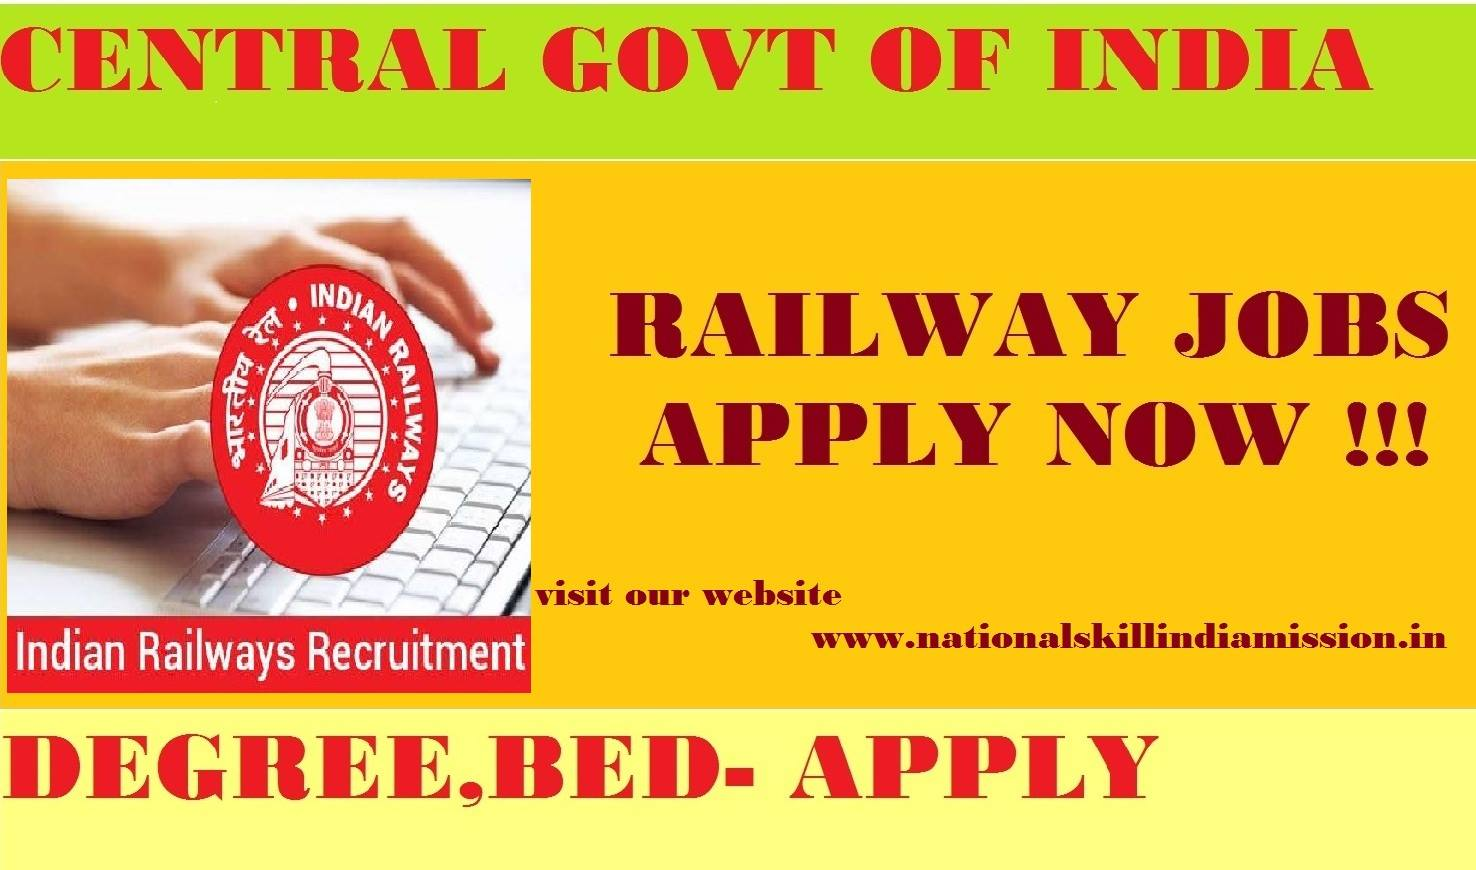 North Central Railway Recruitment-29 Vacancies-Lecturer (PGT), Assistant Teacher (TGT), Primary Teacher (PRT) Jobs-Apply Before 26 September 2017